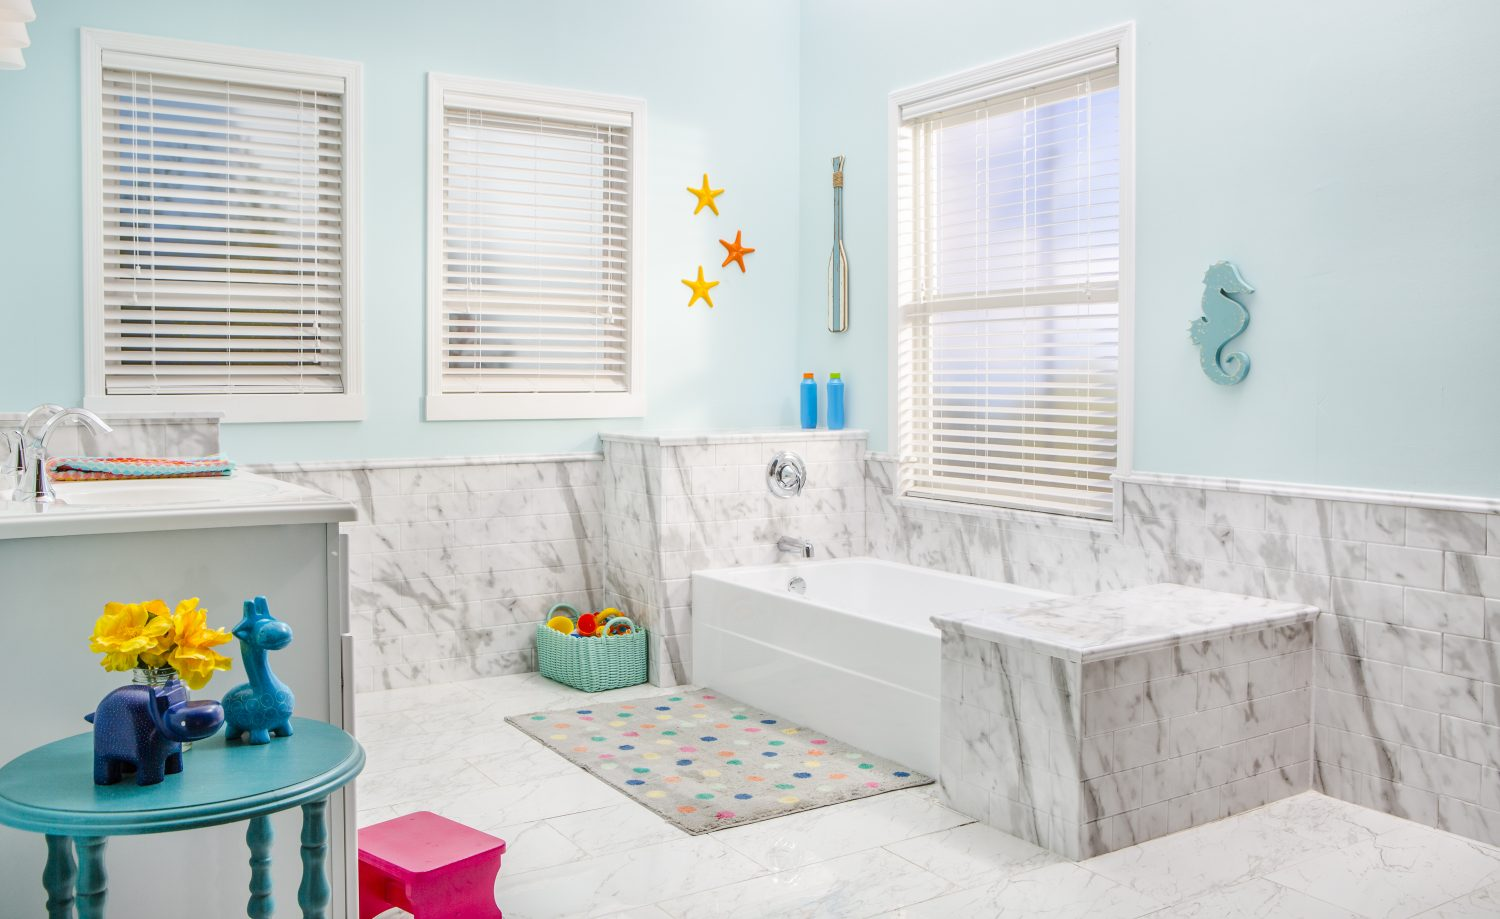 Bathroom Products Bathroom Remodeling Products Bathroom Remodelers Re Bath